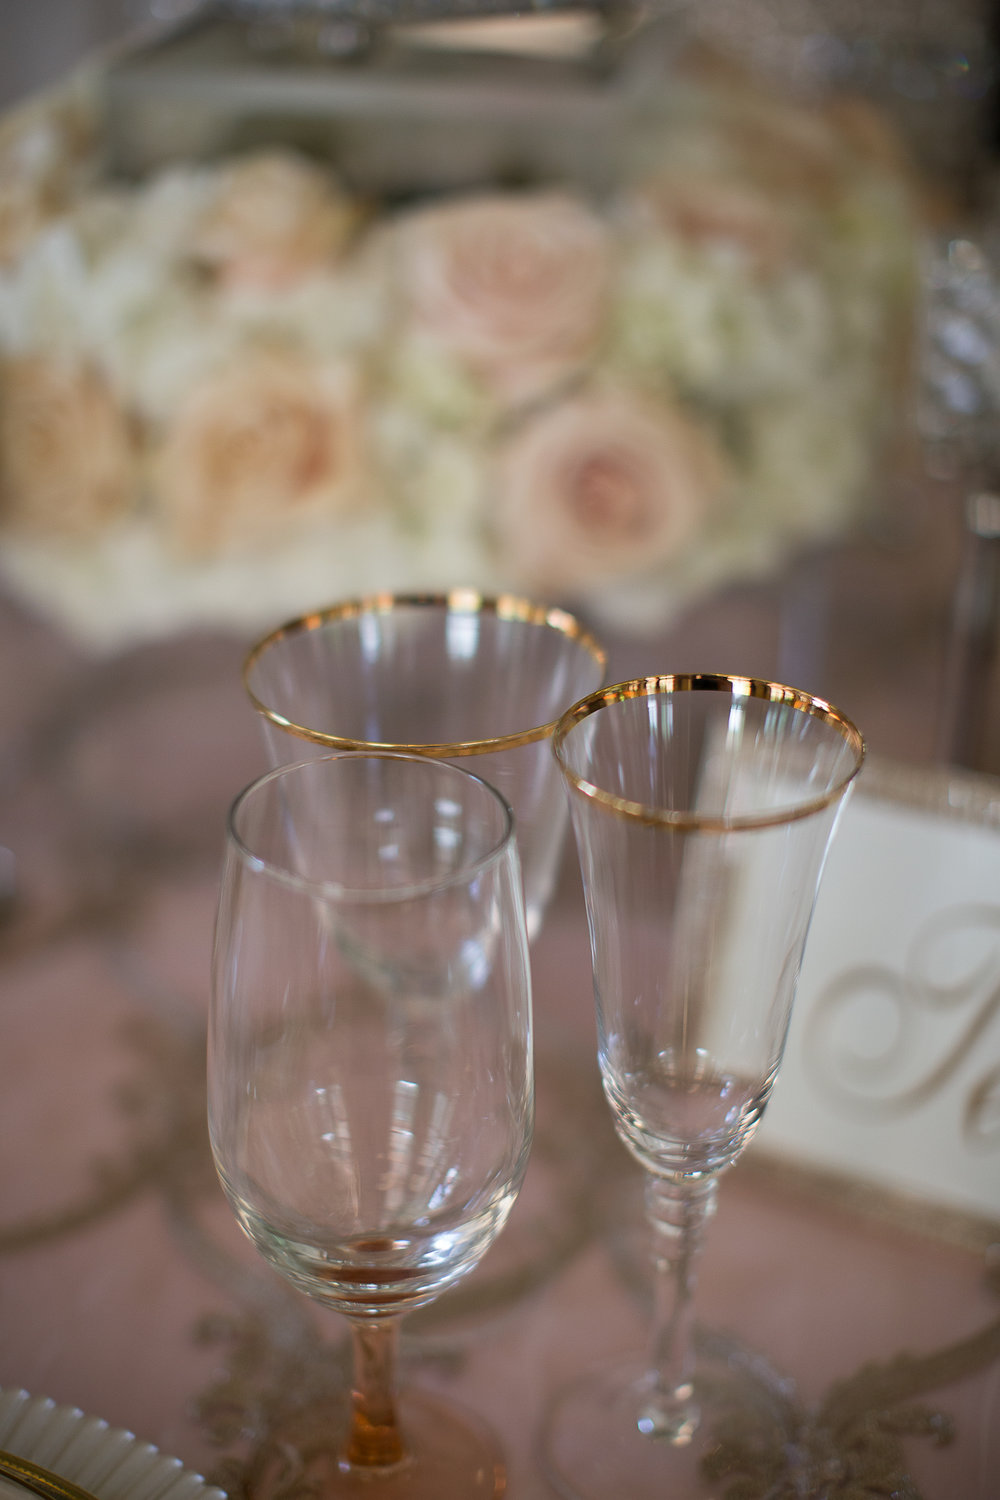 Brazilian Court Palm Beach Wedding Event Inspiration Tablescape Romantic Champagne